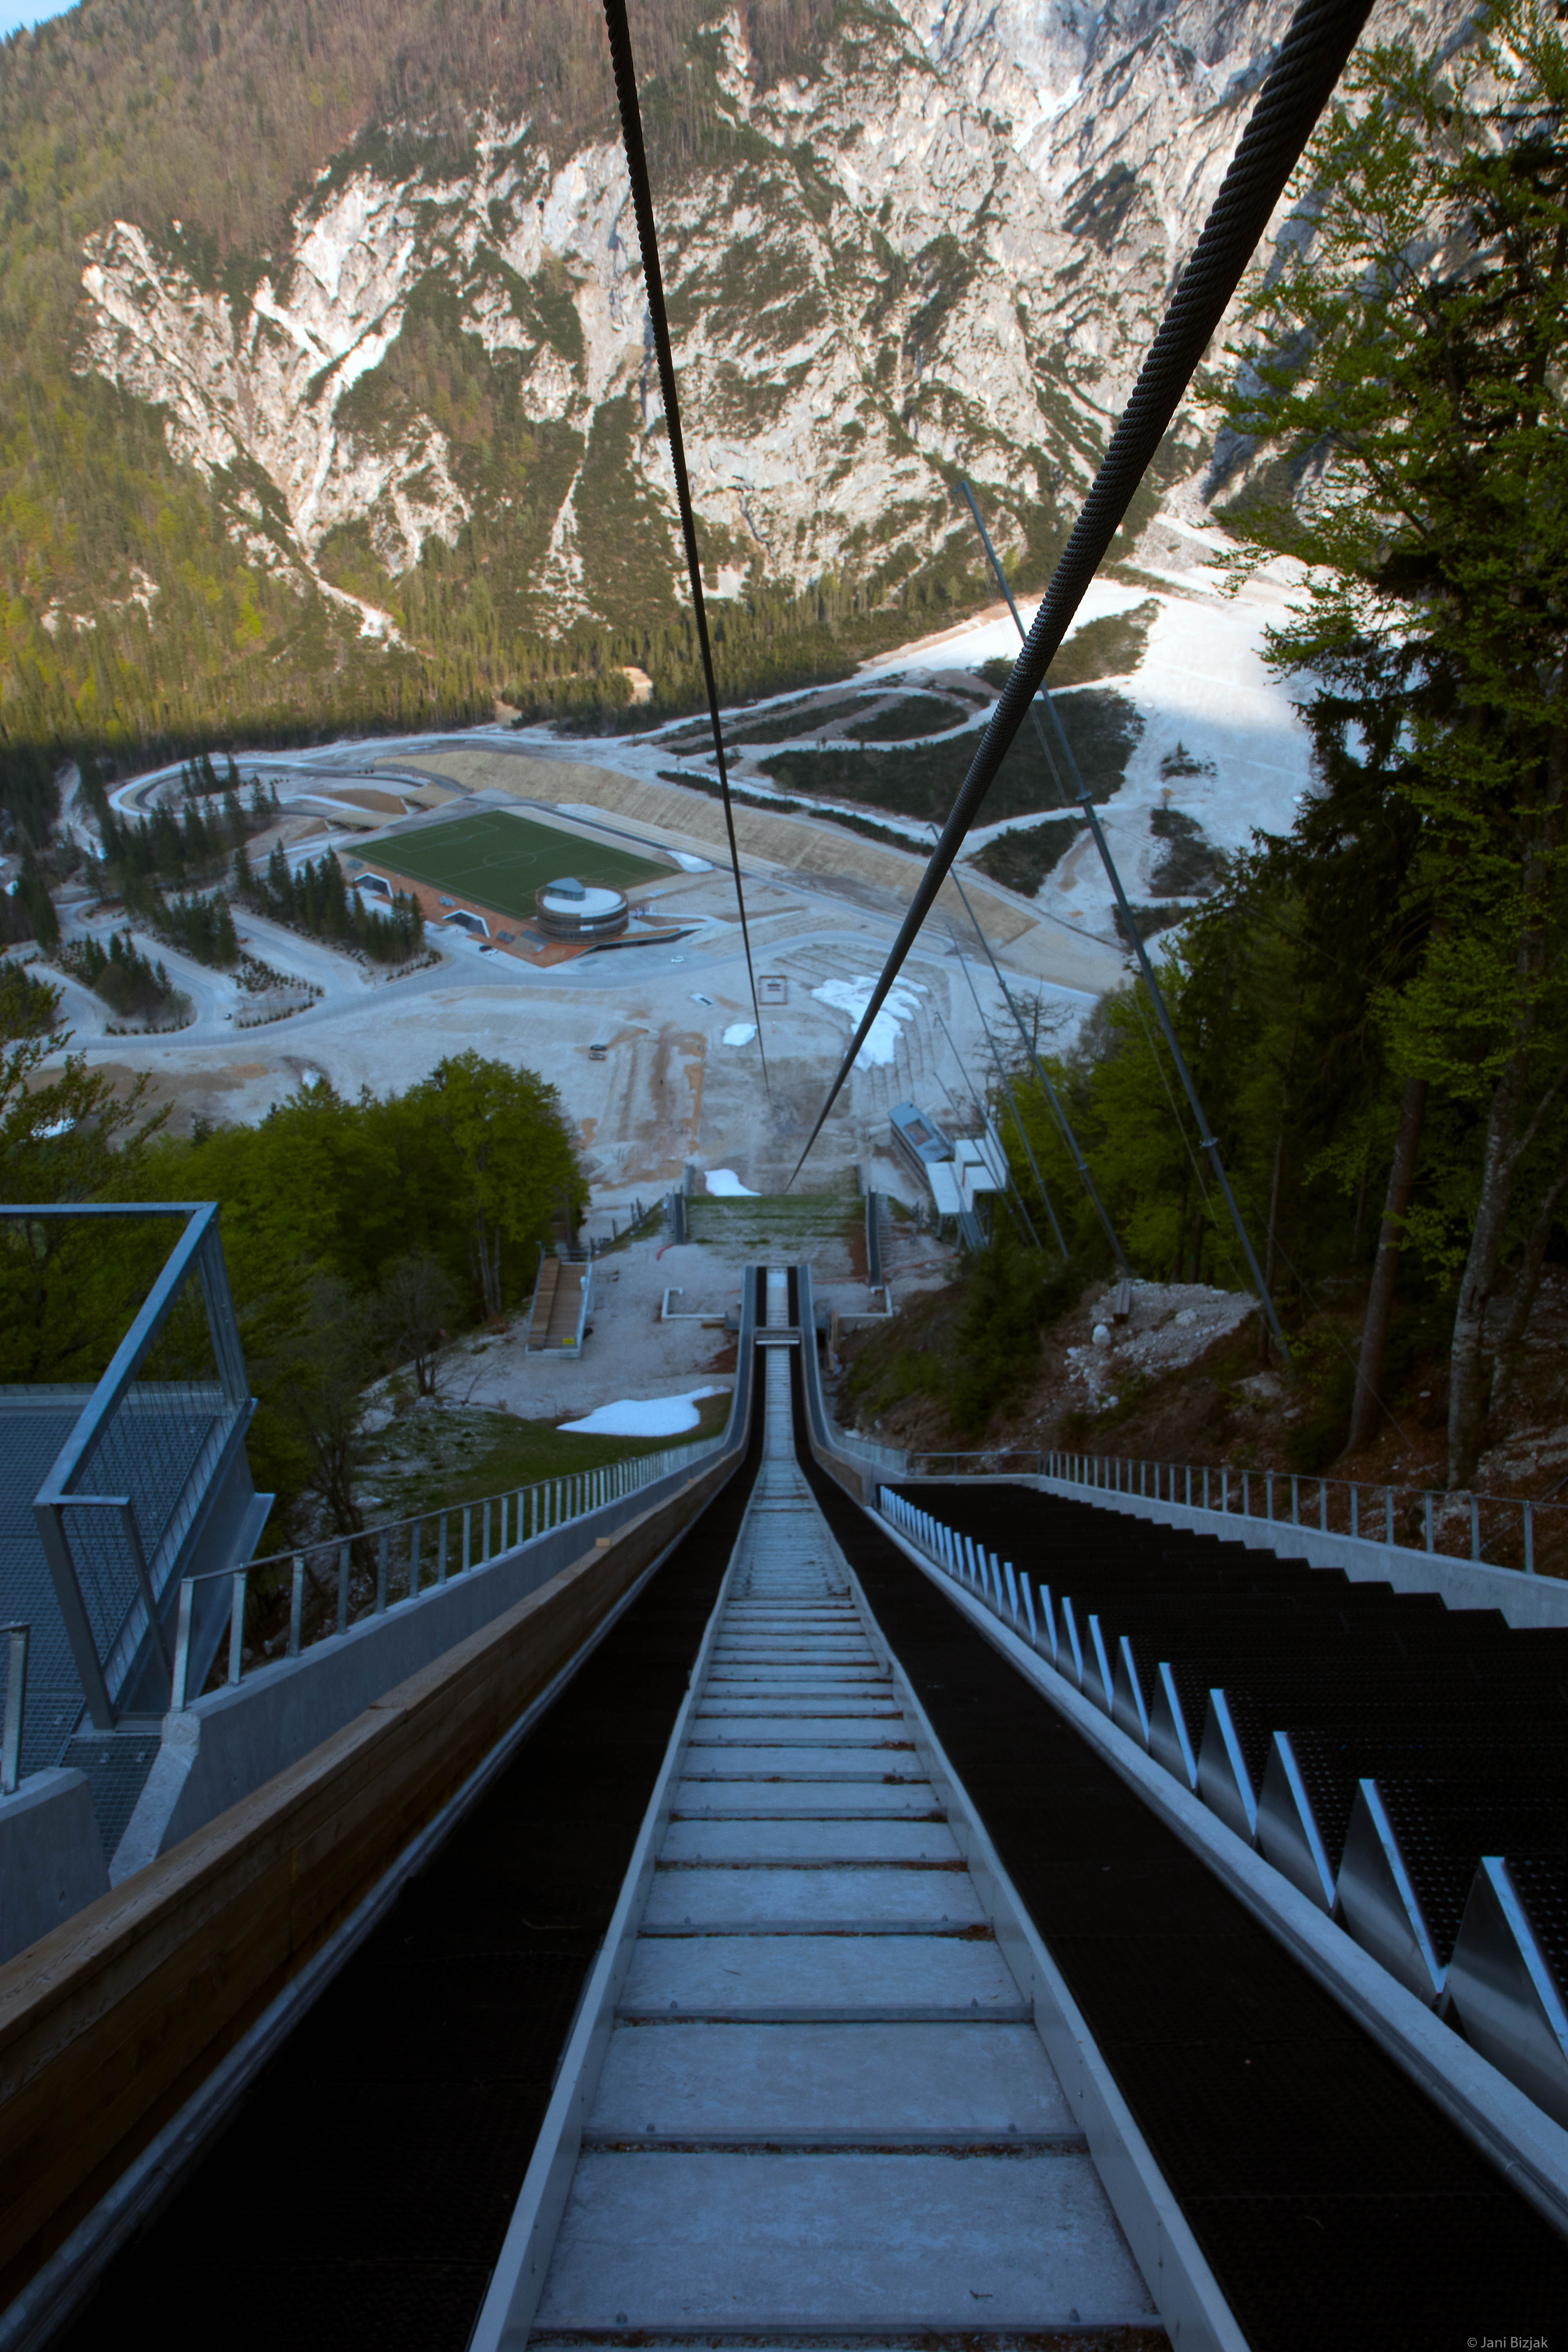 Top of a ski jump in Planica. About 250m away from the landing strip.